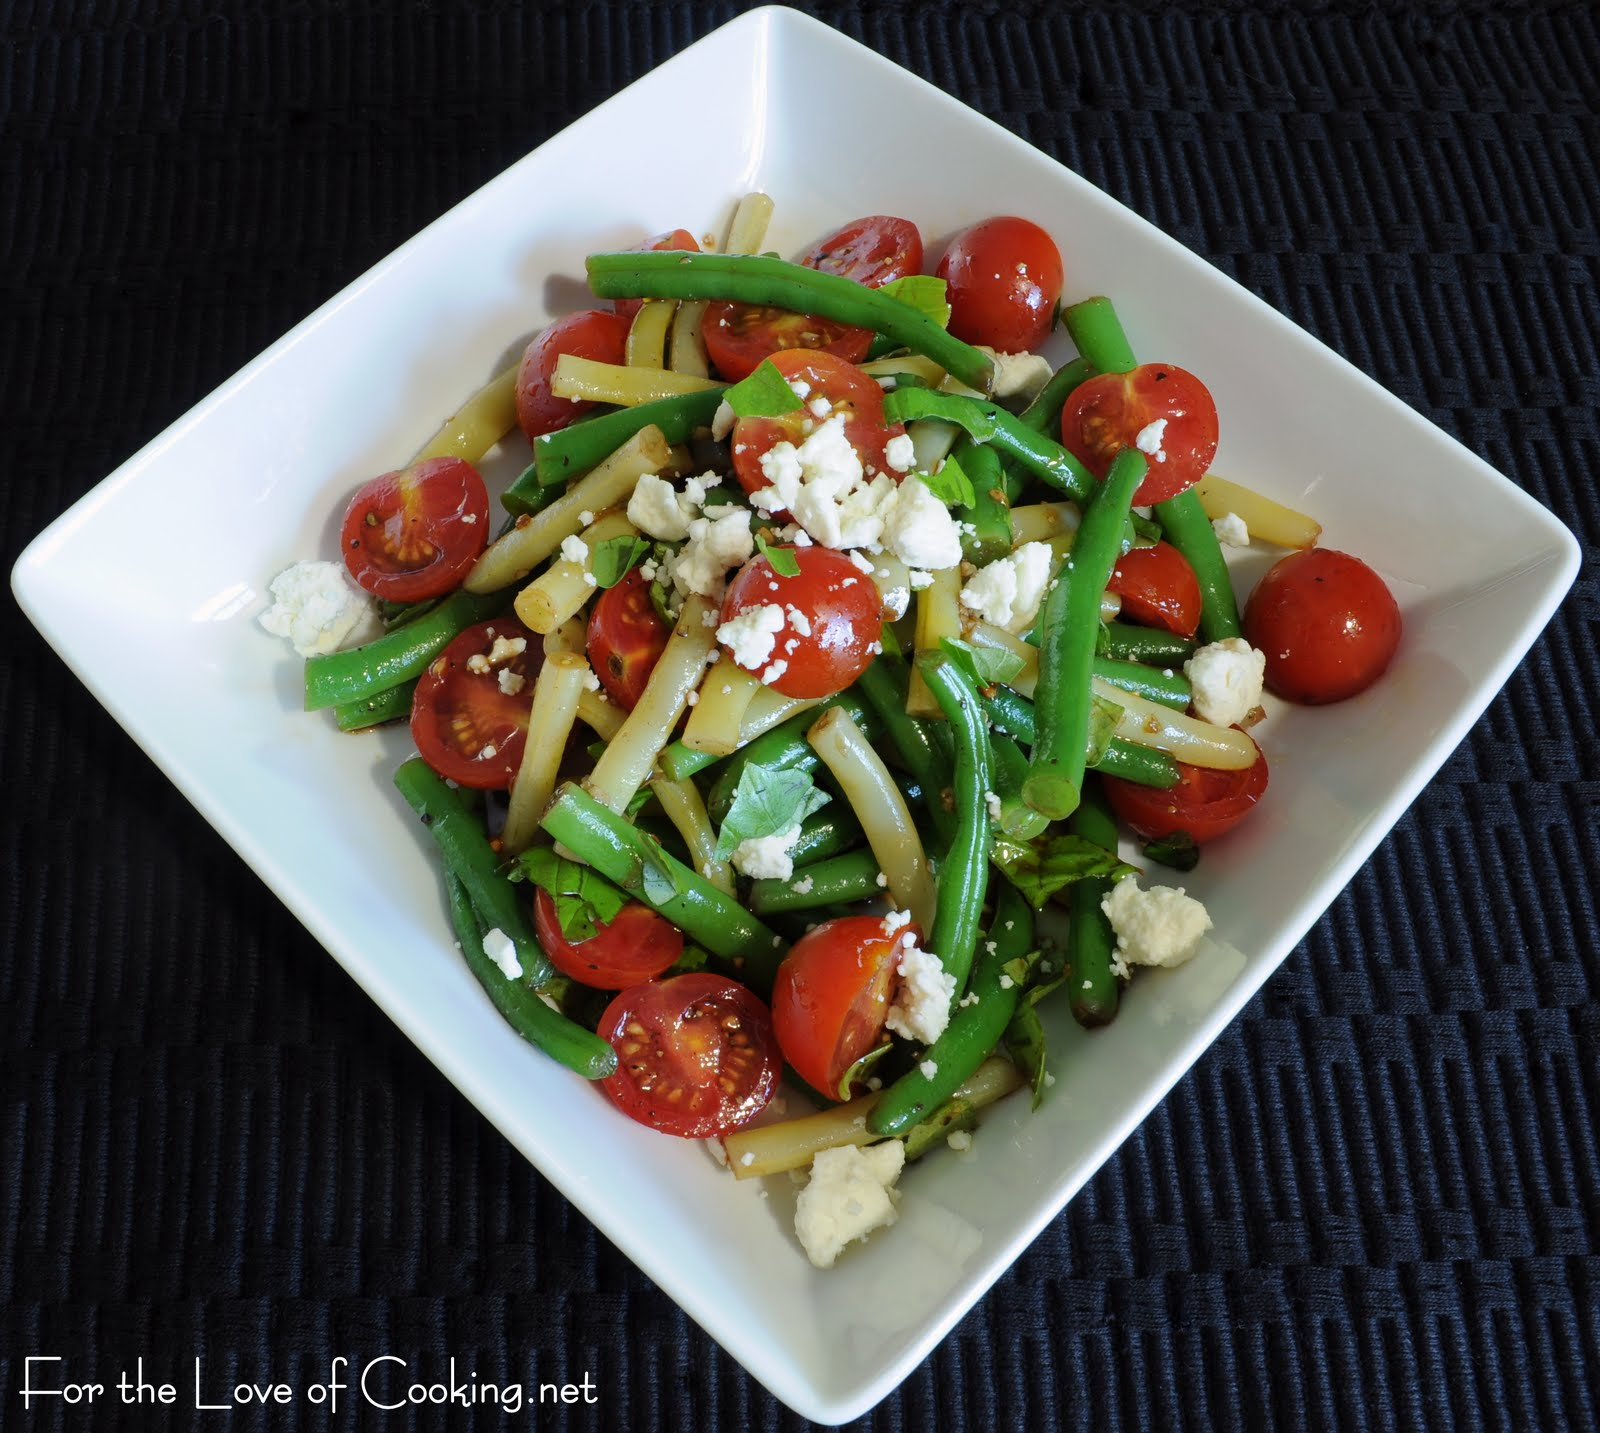 ... Green and Yellow Beans, Tomatoes, and Basil in a Balsamic Vinaigrette